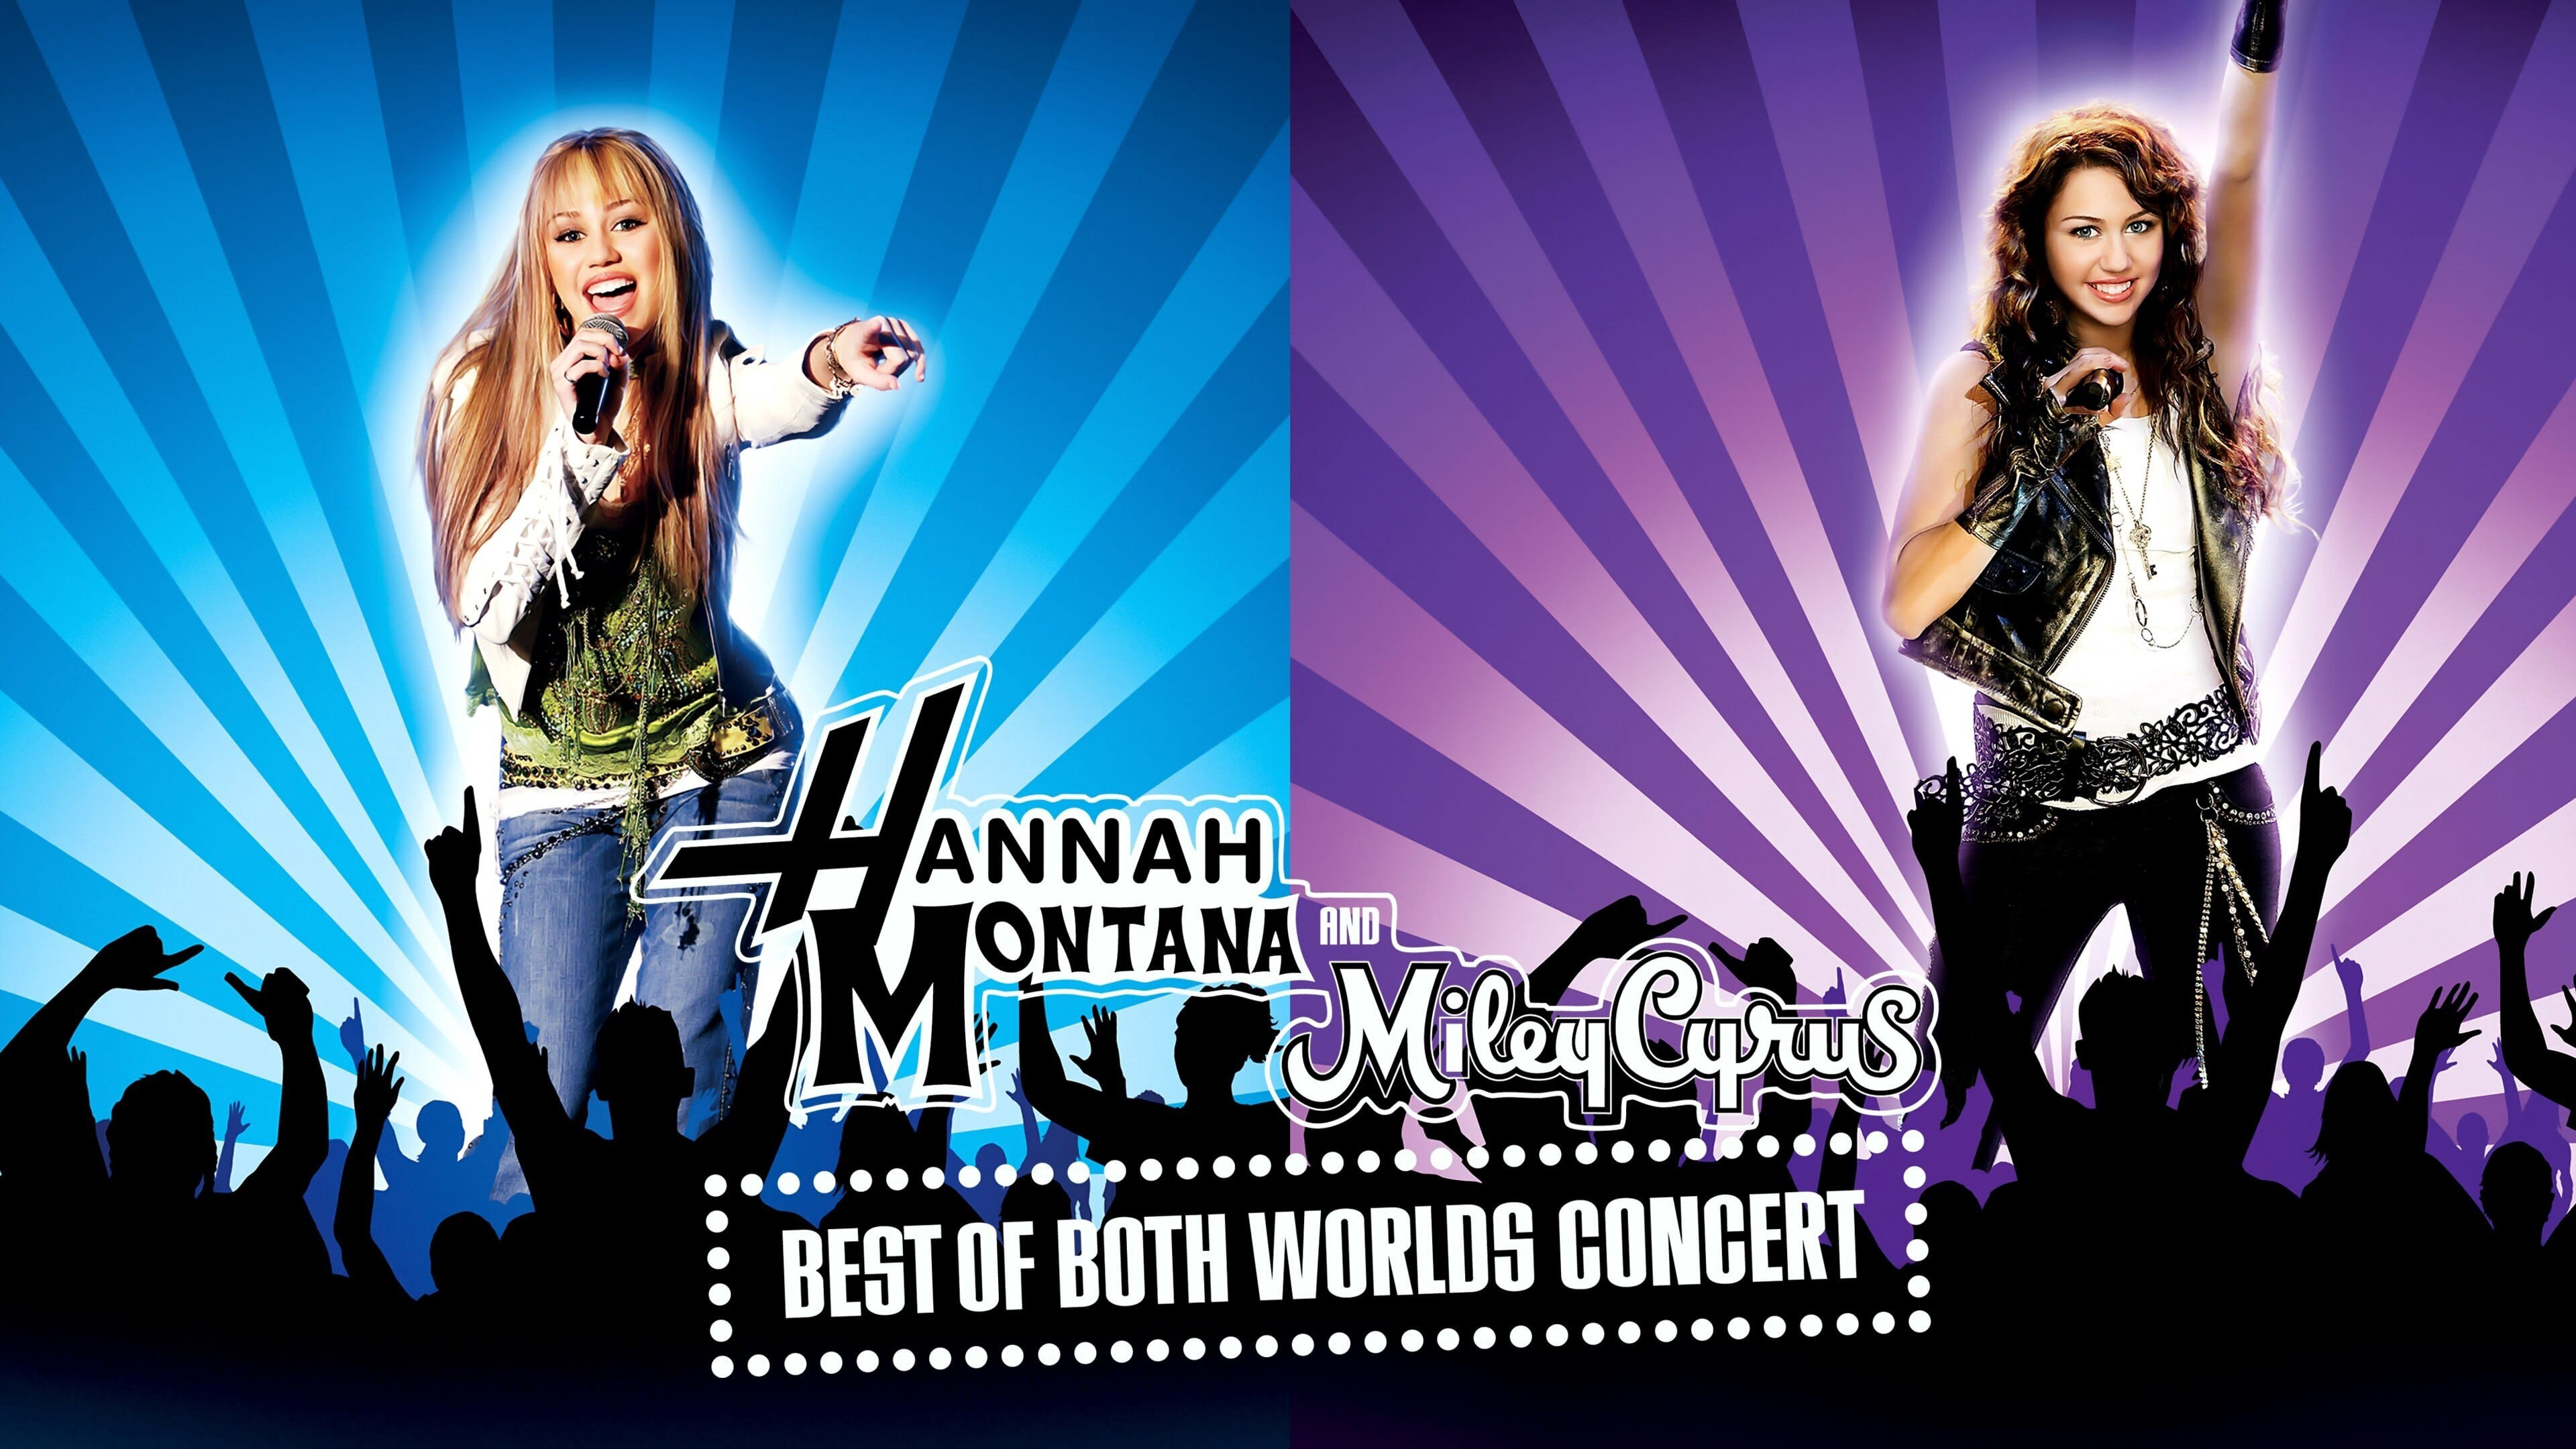 Ver Películas Hannah Montana Miley Cyrus Best Of Both Worlds Concert 2008 Completa Online En Línea Chile Latino Gratis By Jjanderson Mig Mar 2021 Medium